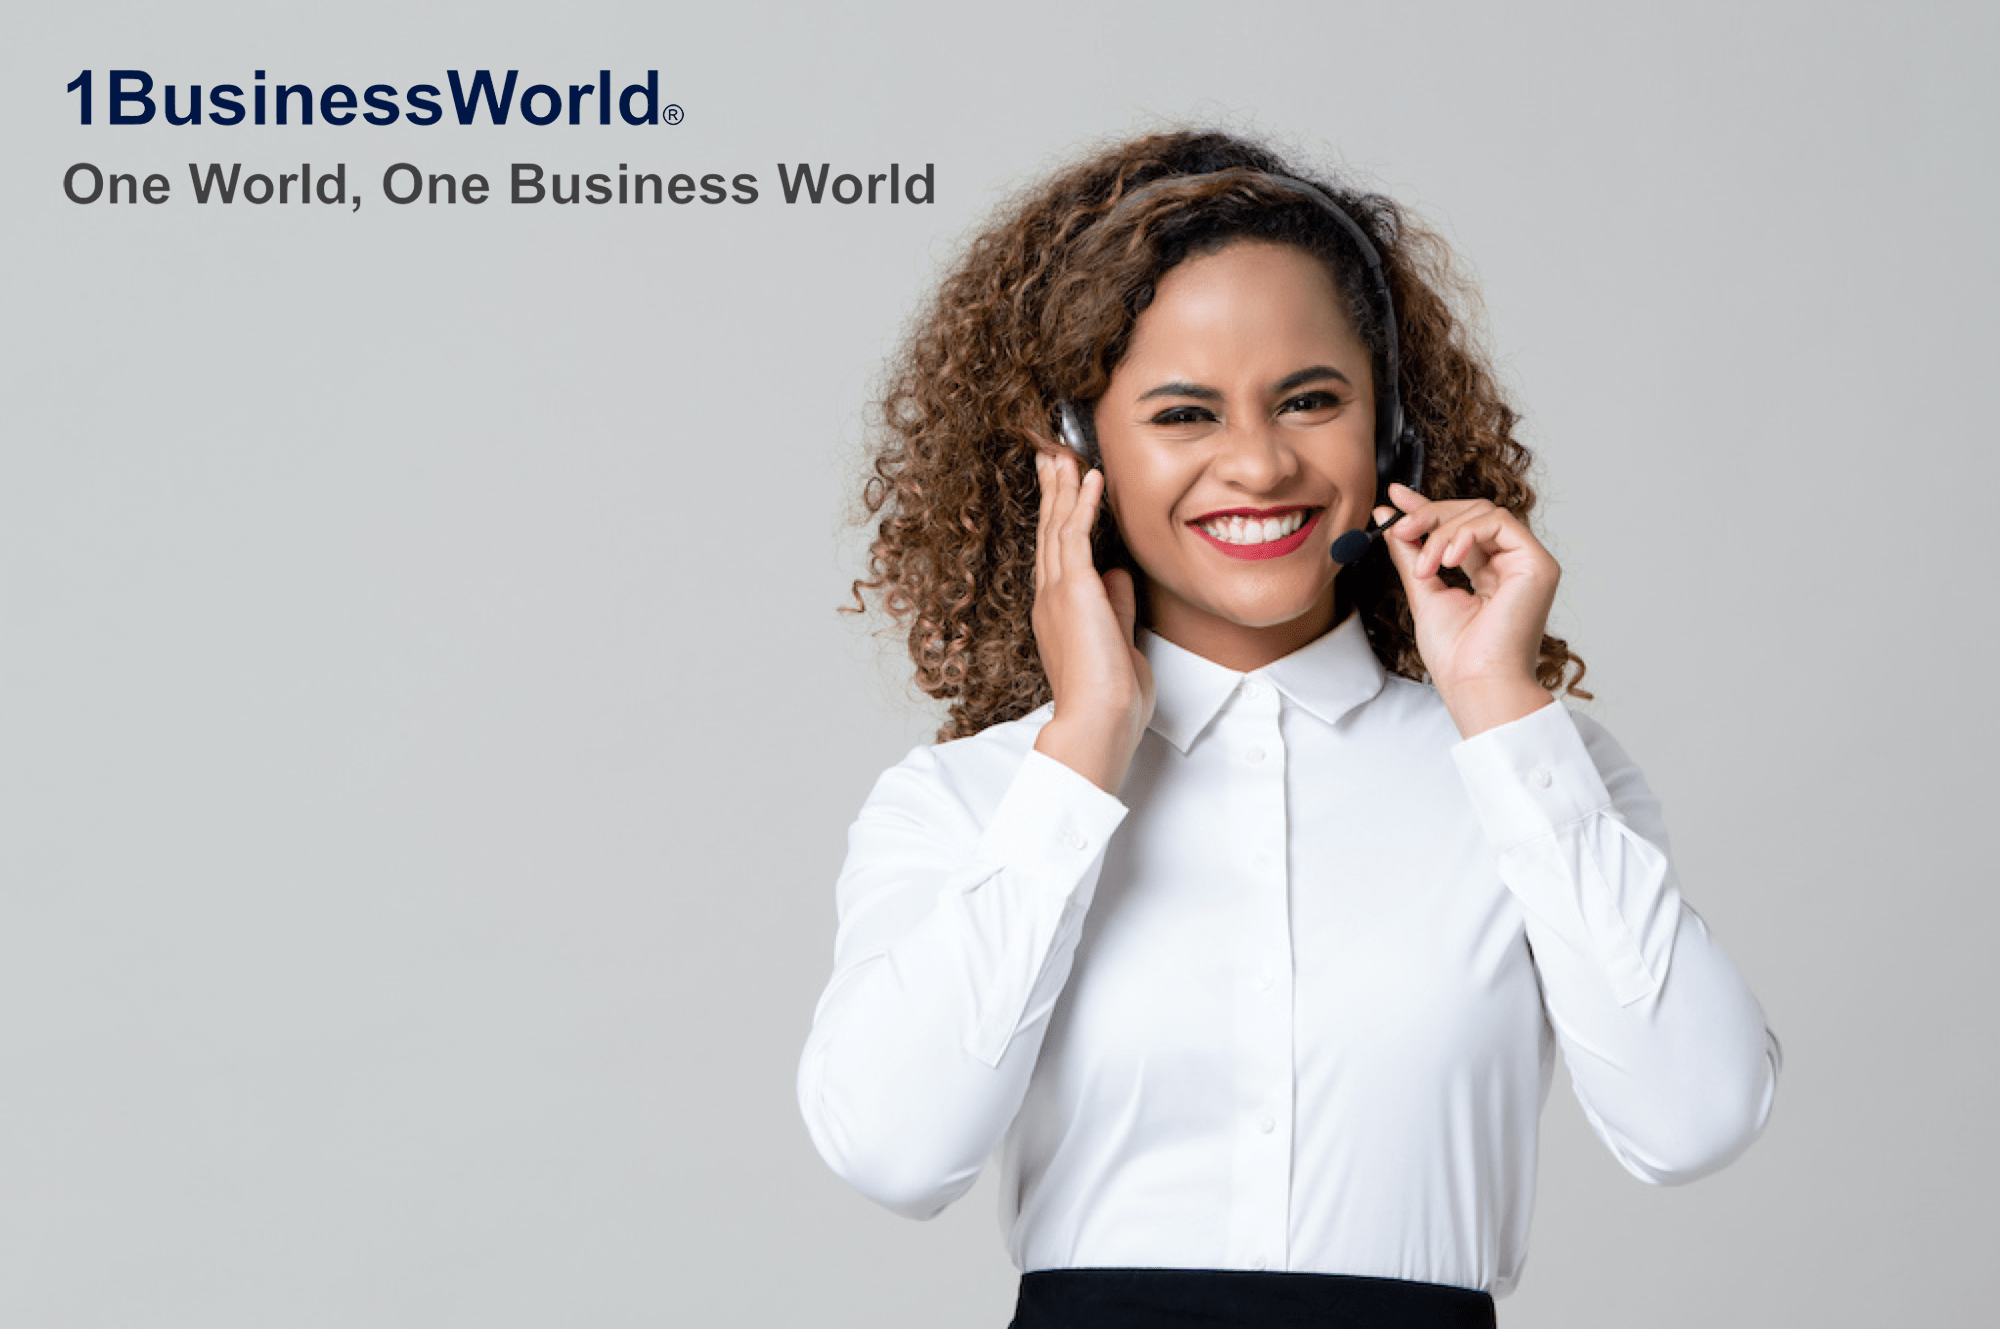 1BusinessWorld - Contact Us